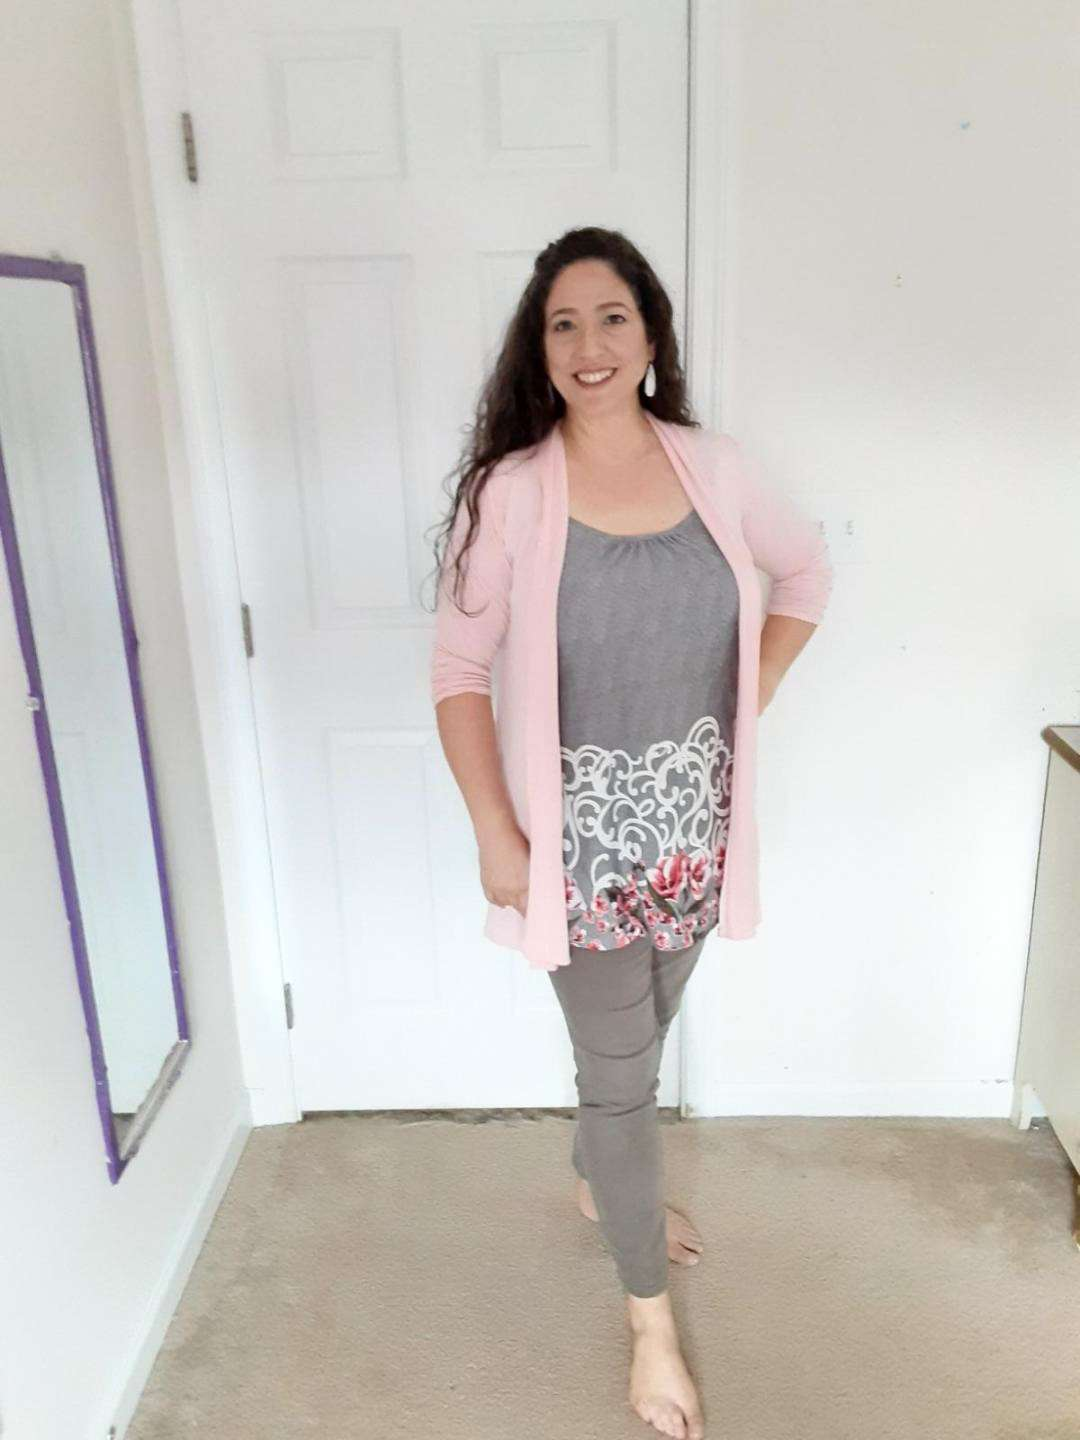 Cute Comfy Casual Outfit Idea for What to Wear At Home Around the House - Neutral jeans and print top with color cardigan